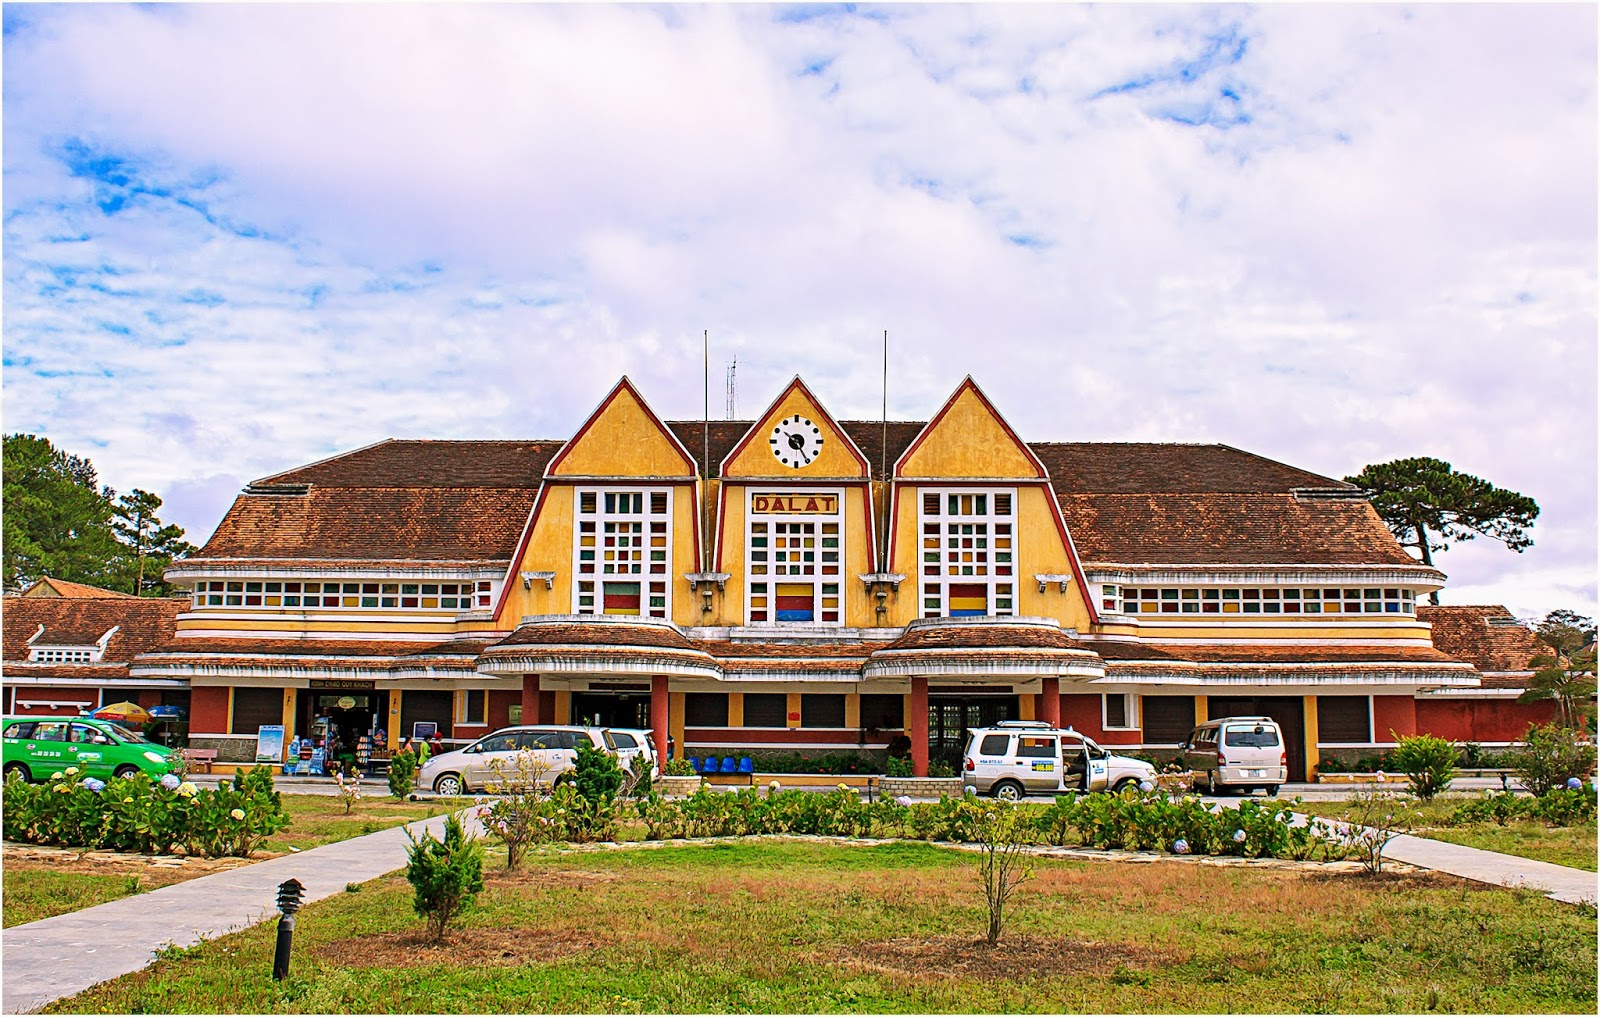 8. Dalat Train Station